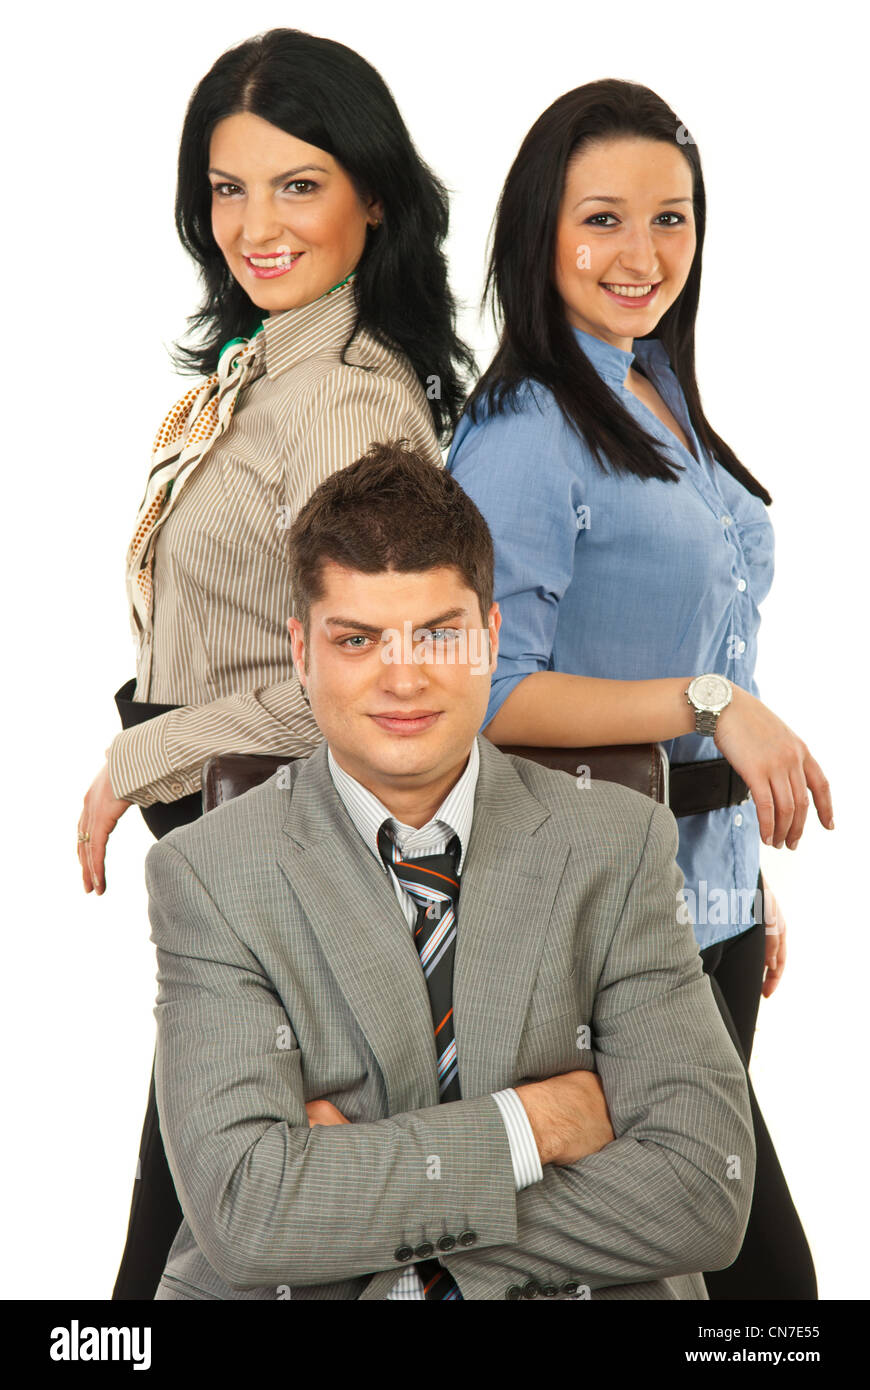 Manager man sitting on chair surrounded by two secretaries against white background - Stock Image